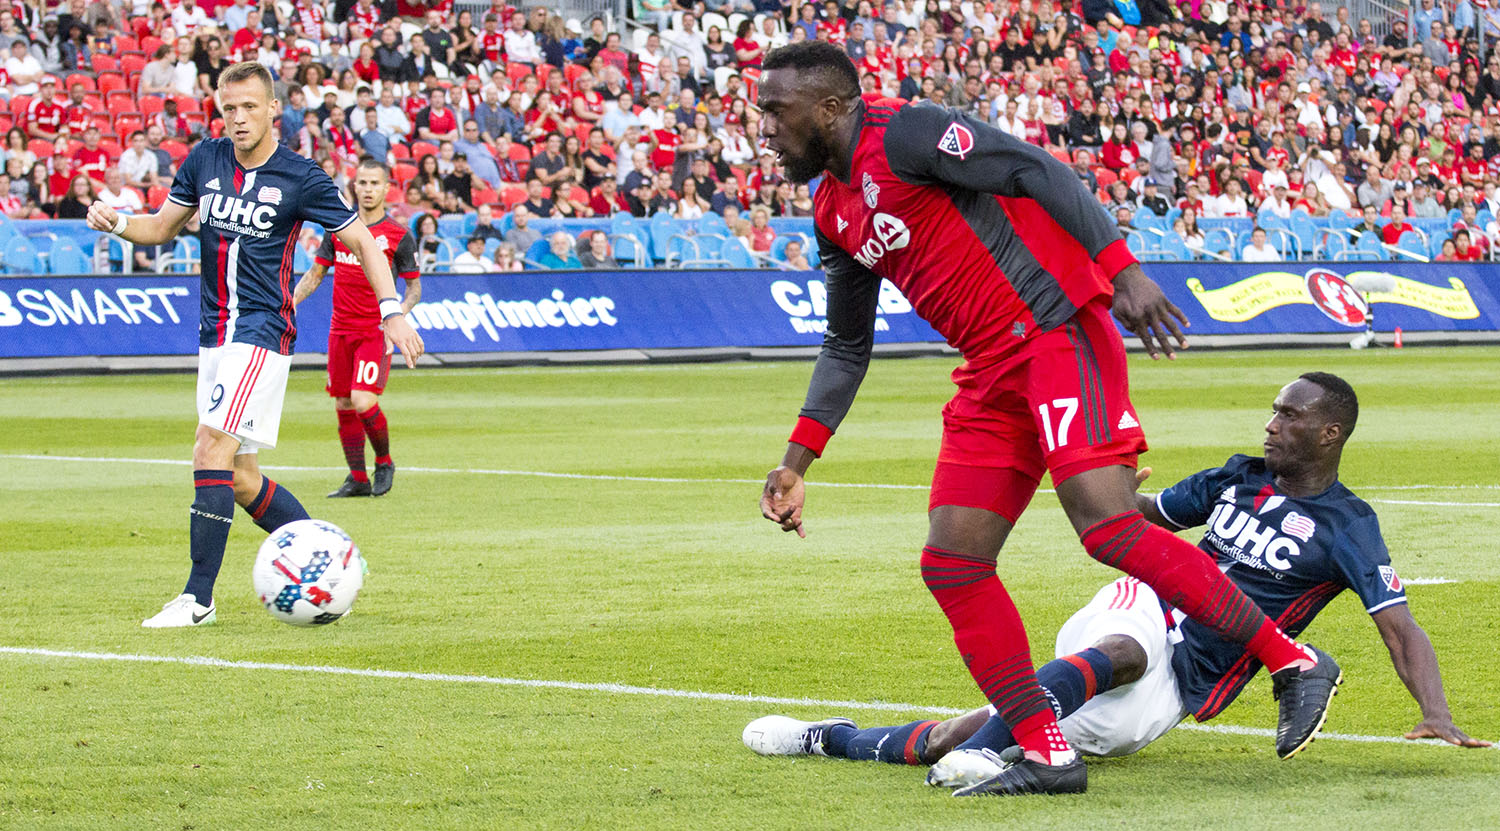 Jozy Altidore gets the ball poked away from him. Image by Dennis Marciniak of denMAR